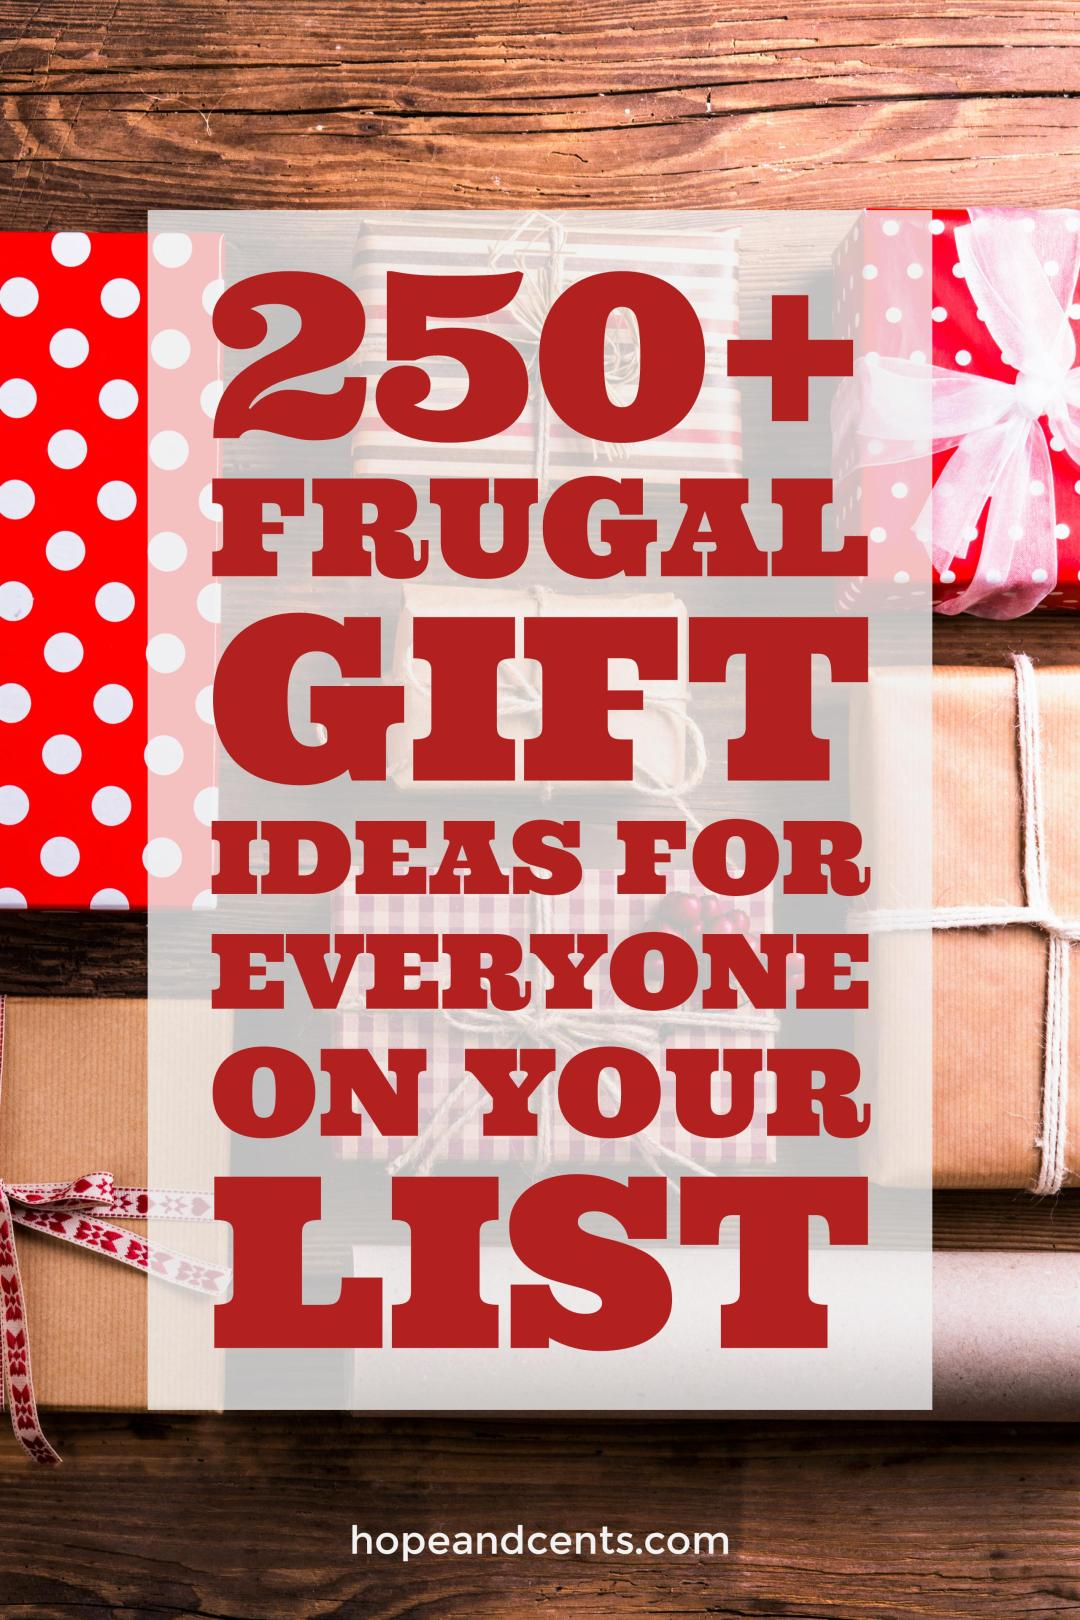 Are looking for frugal and inexpensive gift ideas for Christmas? These ideas will help you find the perfect gift and stick to your budget.